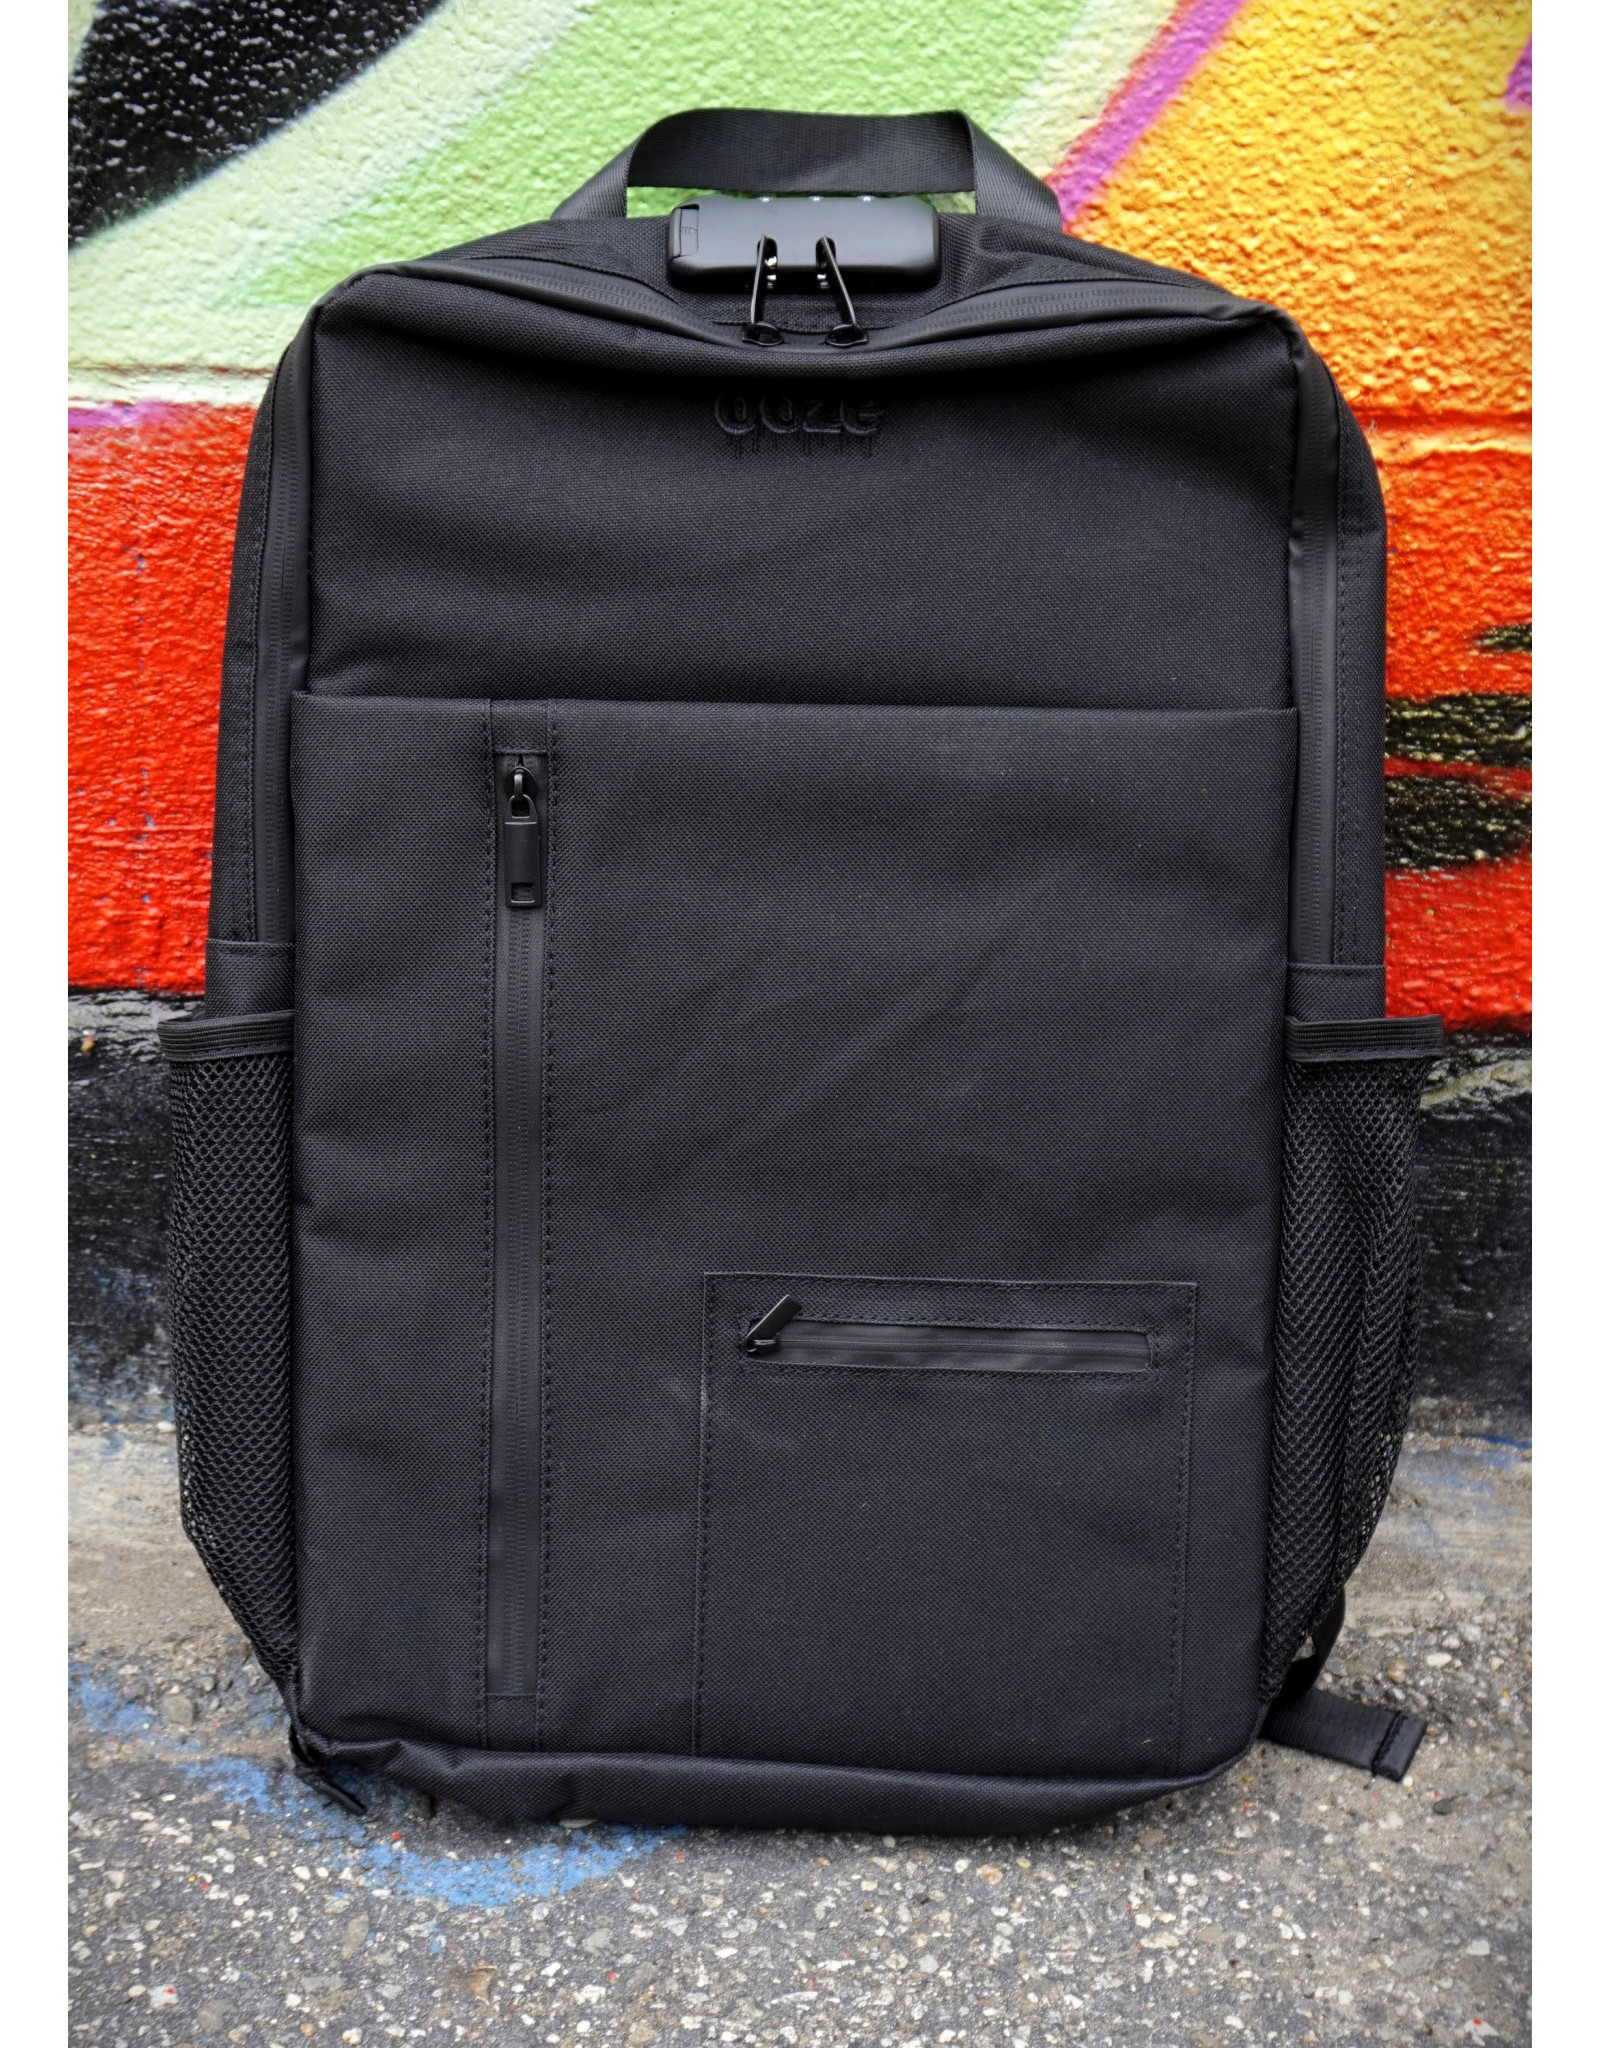 Ooze Ooze Traveler Series Smell Proof Backpack - Classic